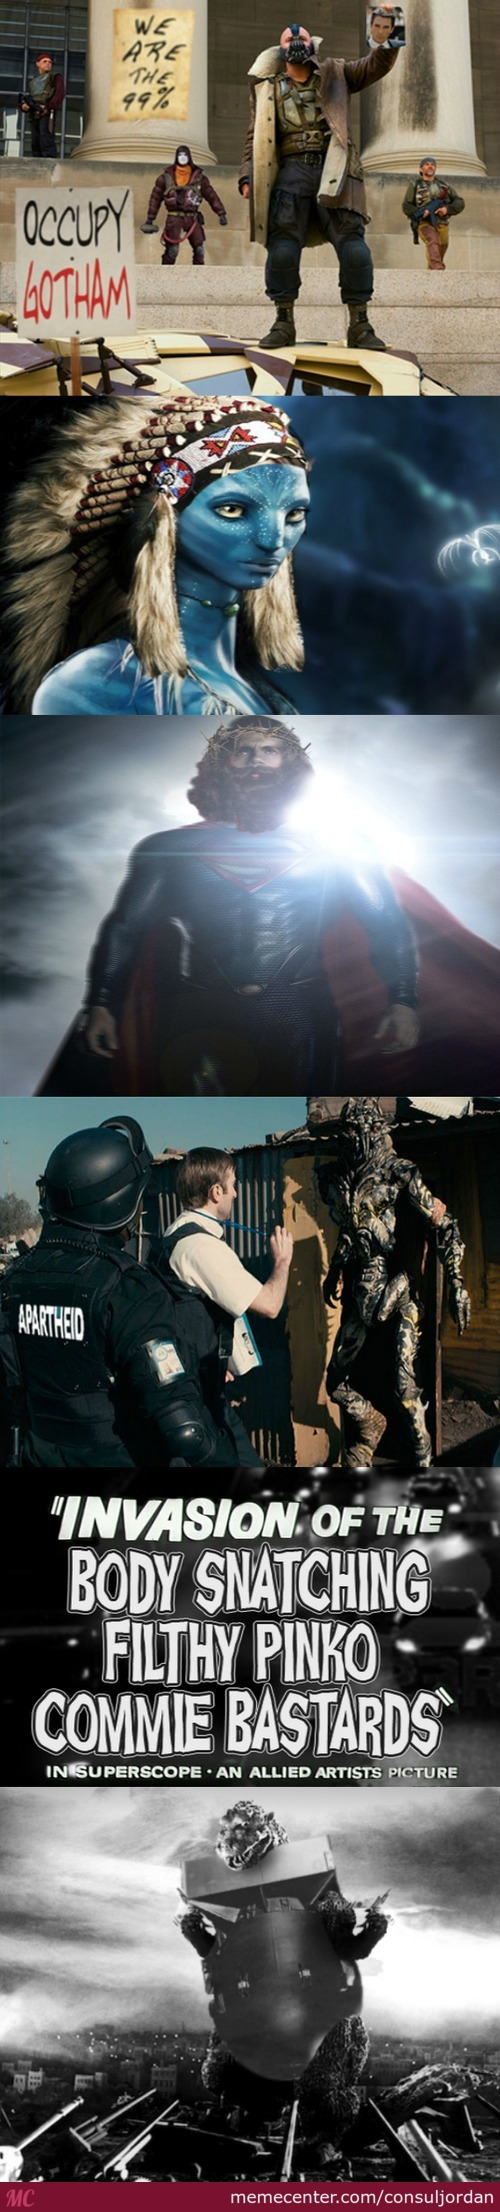 If Movie Symbolism Was More Obvious